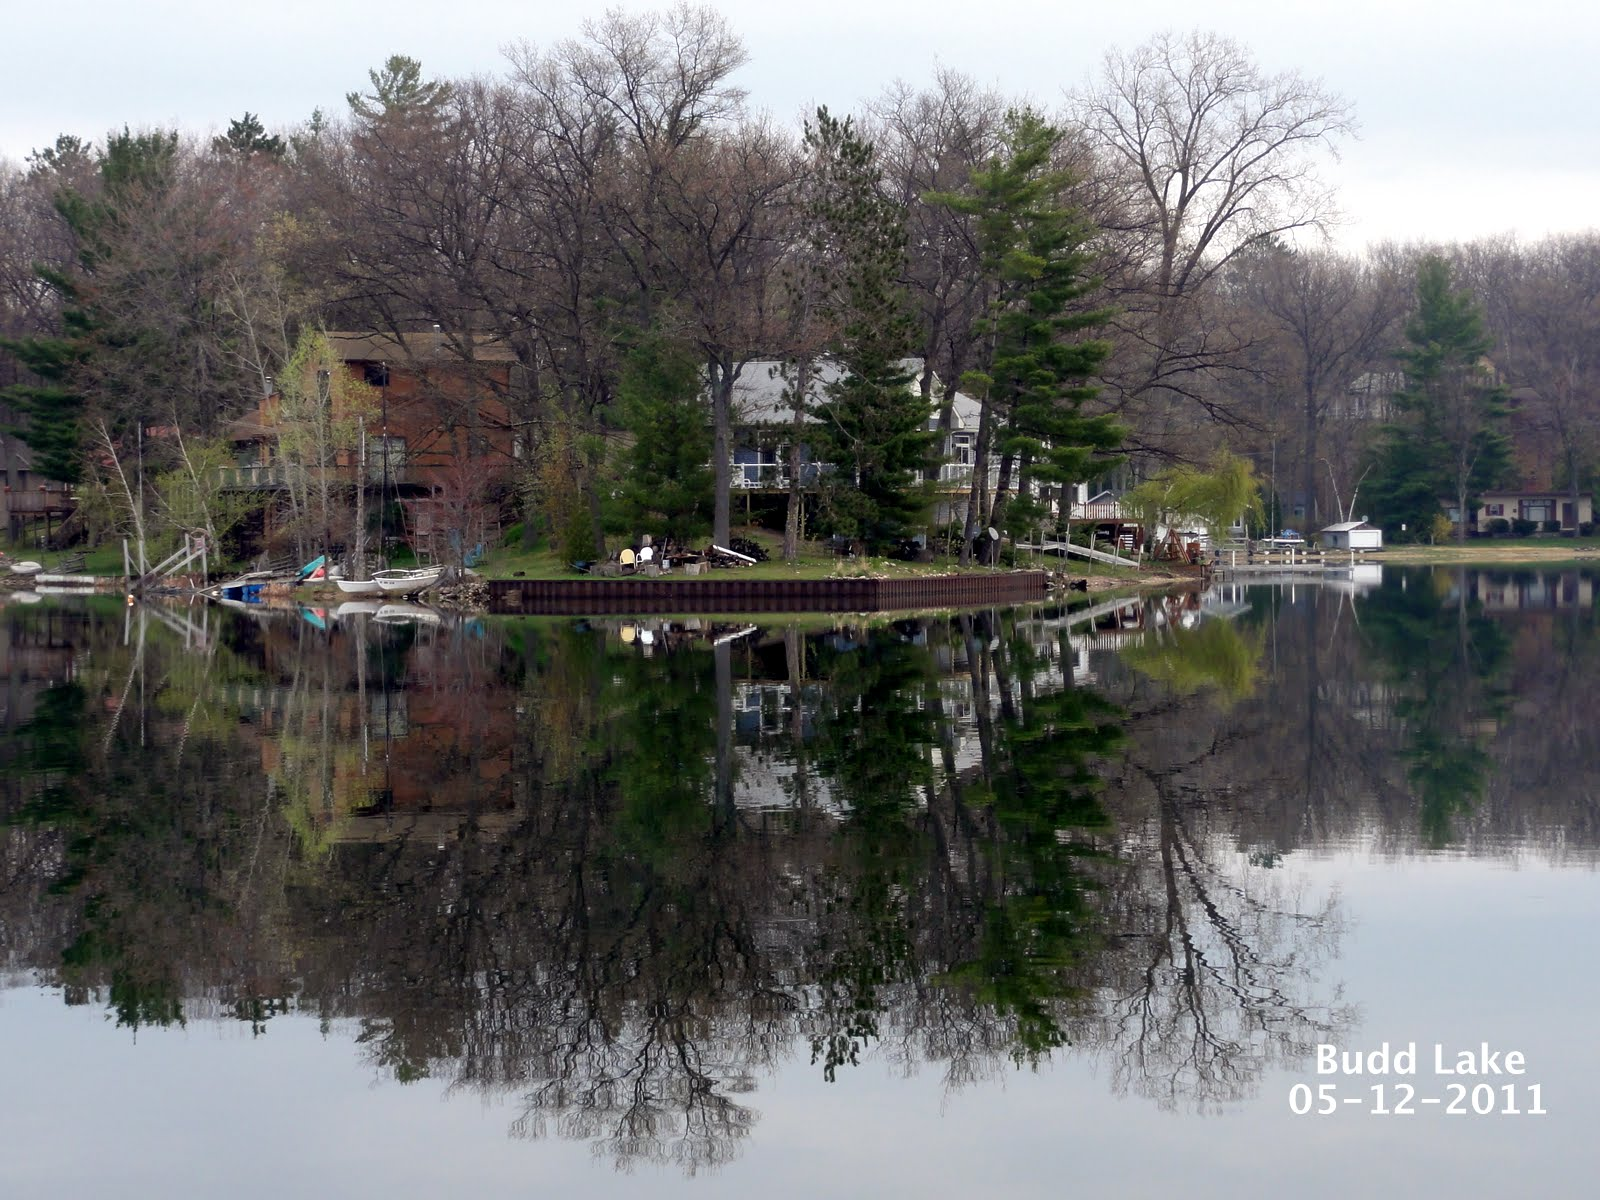 budd lake latin singles Why use zillow zillow helps you find the newest 07828 real estate listingsby analyzing information on thousands of single family homes for sale in 07828, new jersey and across the united states, we calculate home values (zestimates) and the zillow home value price index if you're looking to rent in 07828, check out our extensive list of luxury apartments and townhomes.